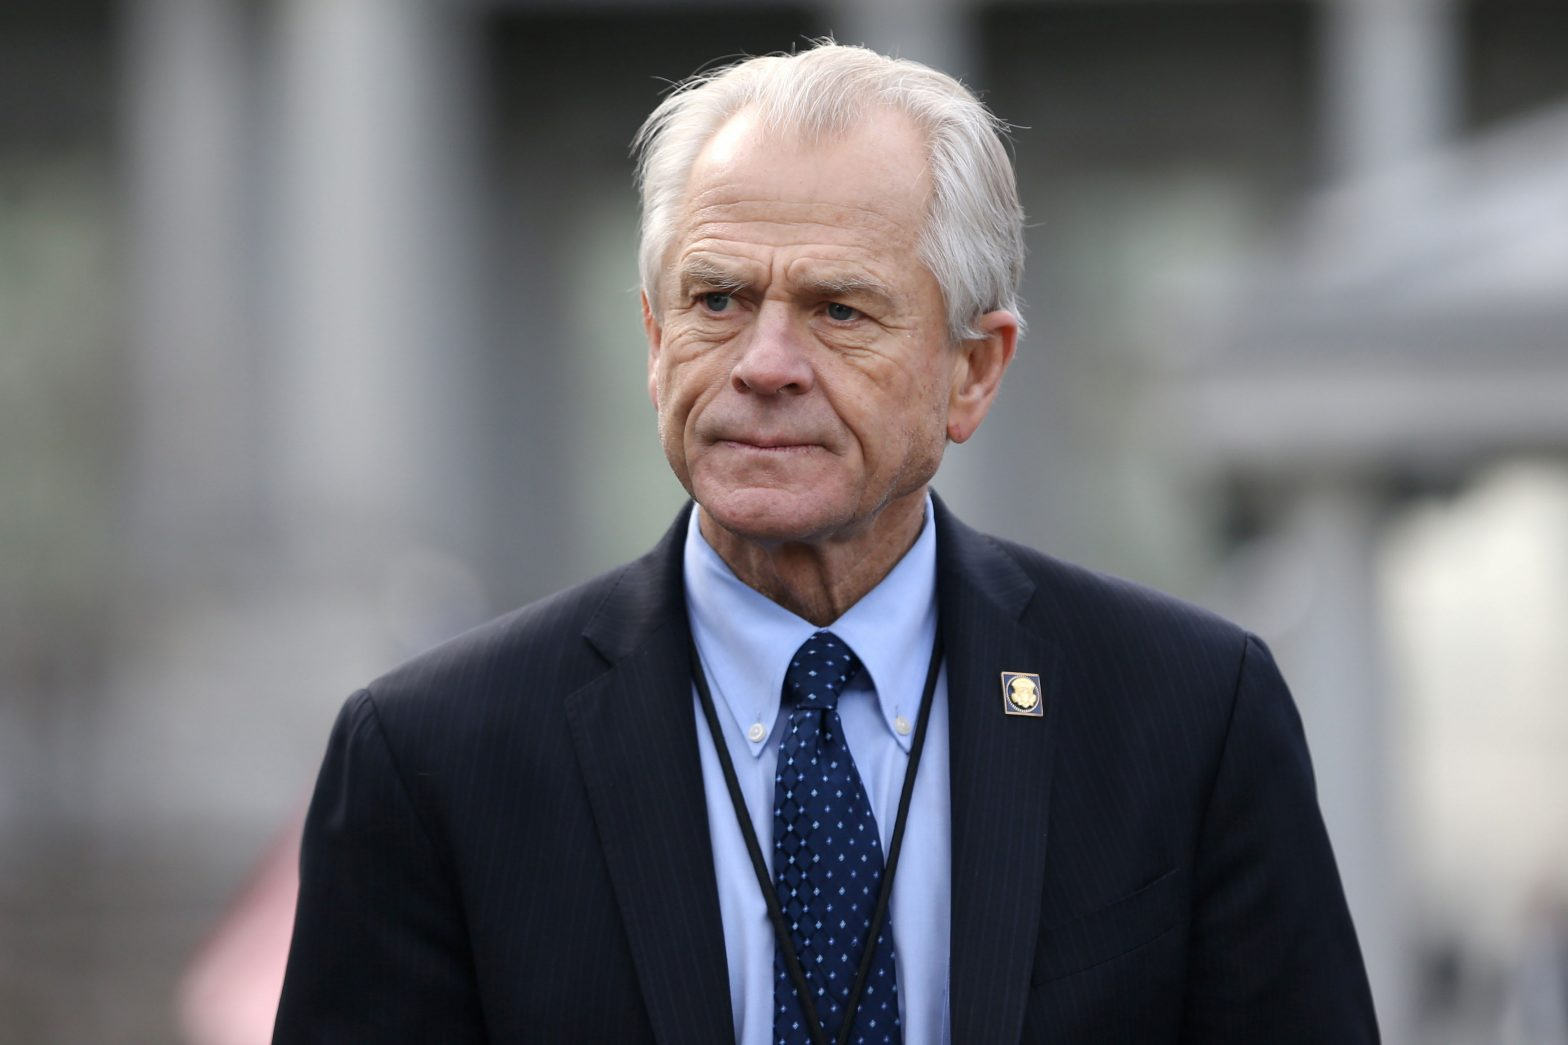 Peter Navarro: Reports that US would restrict Chinese companies were 'fake news' – CNBC